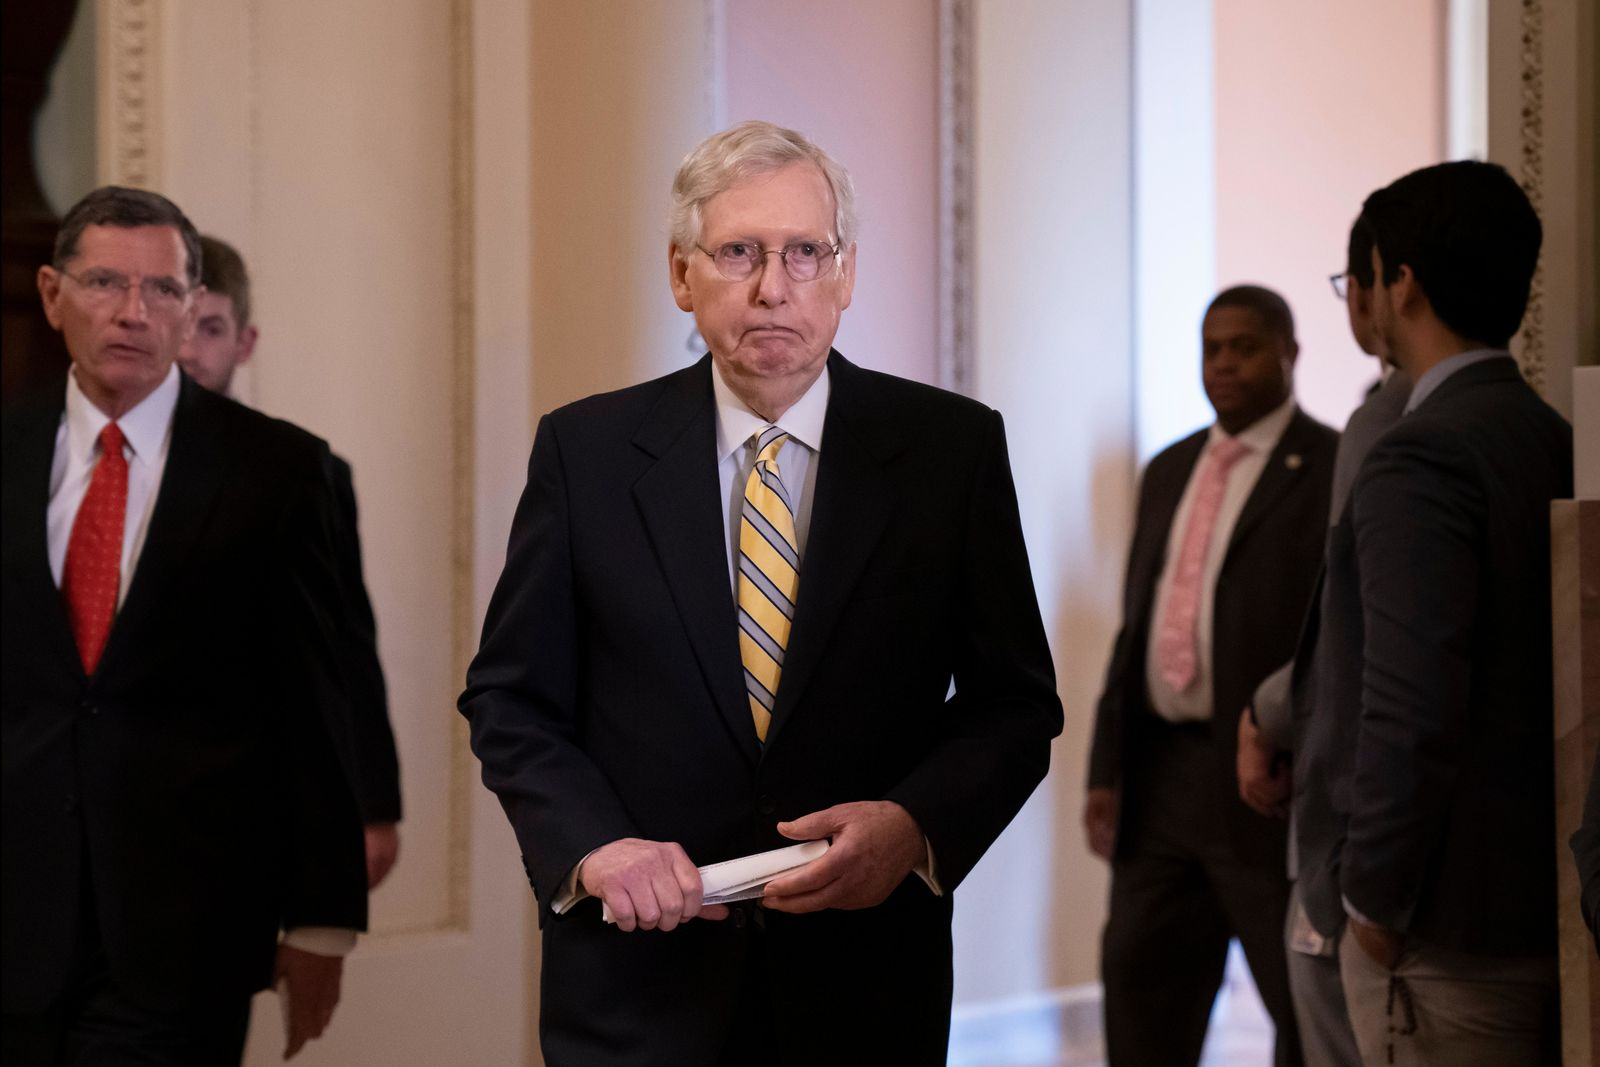 Senate Majority Leader Mitch McConnell, R-Ky., joined at left by Sen. John Barrasso, R-Wyo., arrives to speak to reporters during a news conference at the Capitol in Washington. (AP Photo/J. Scott Applewhite)